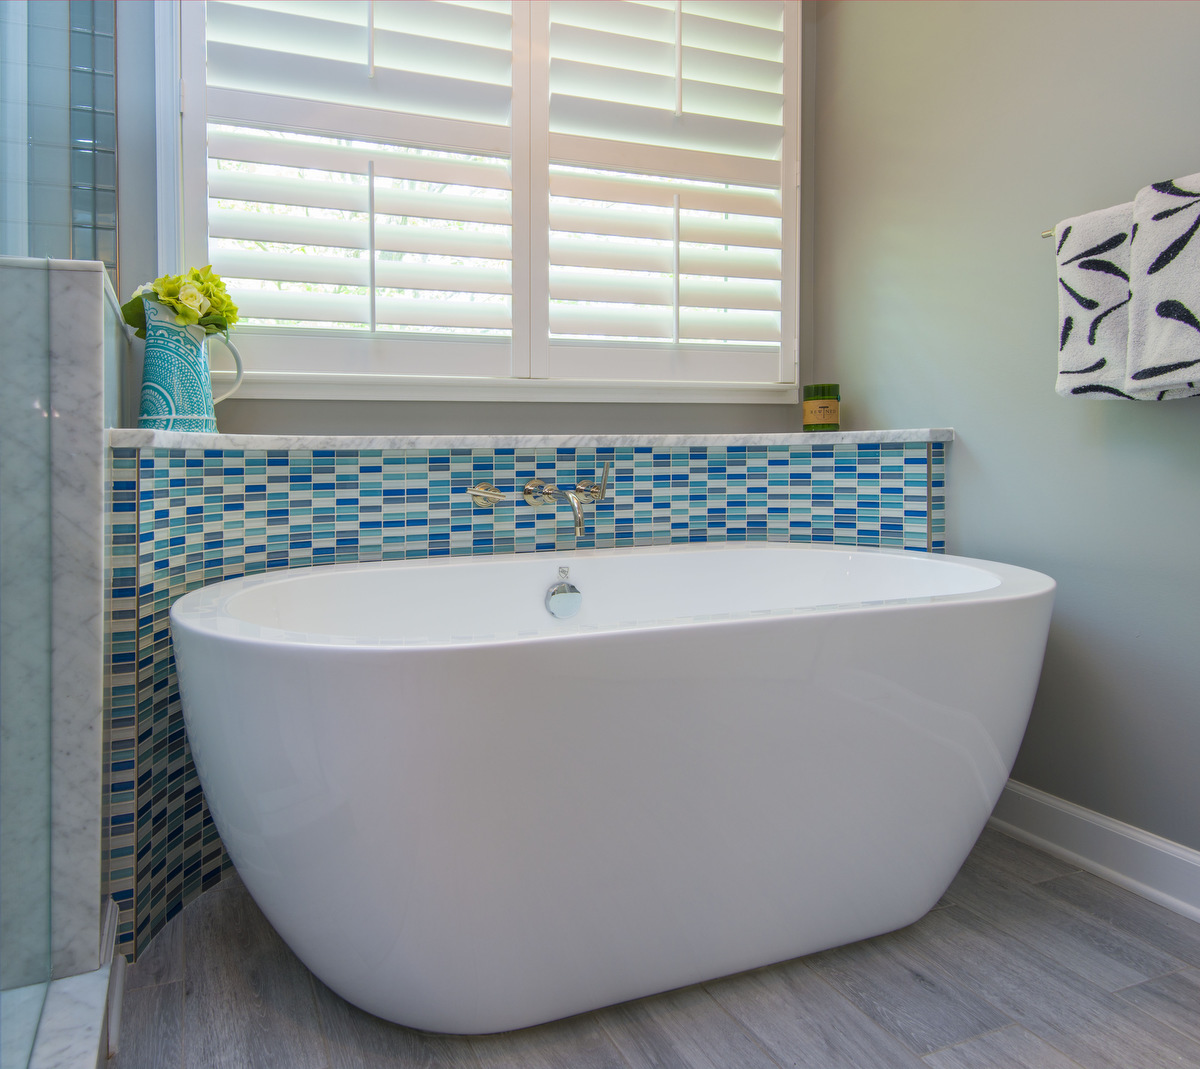 large-modern-tub-with-blue-tile